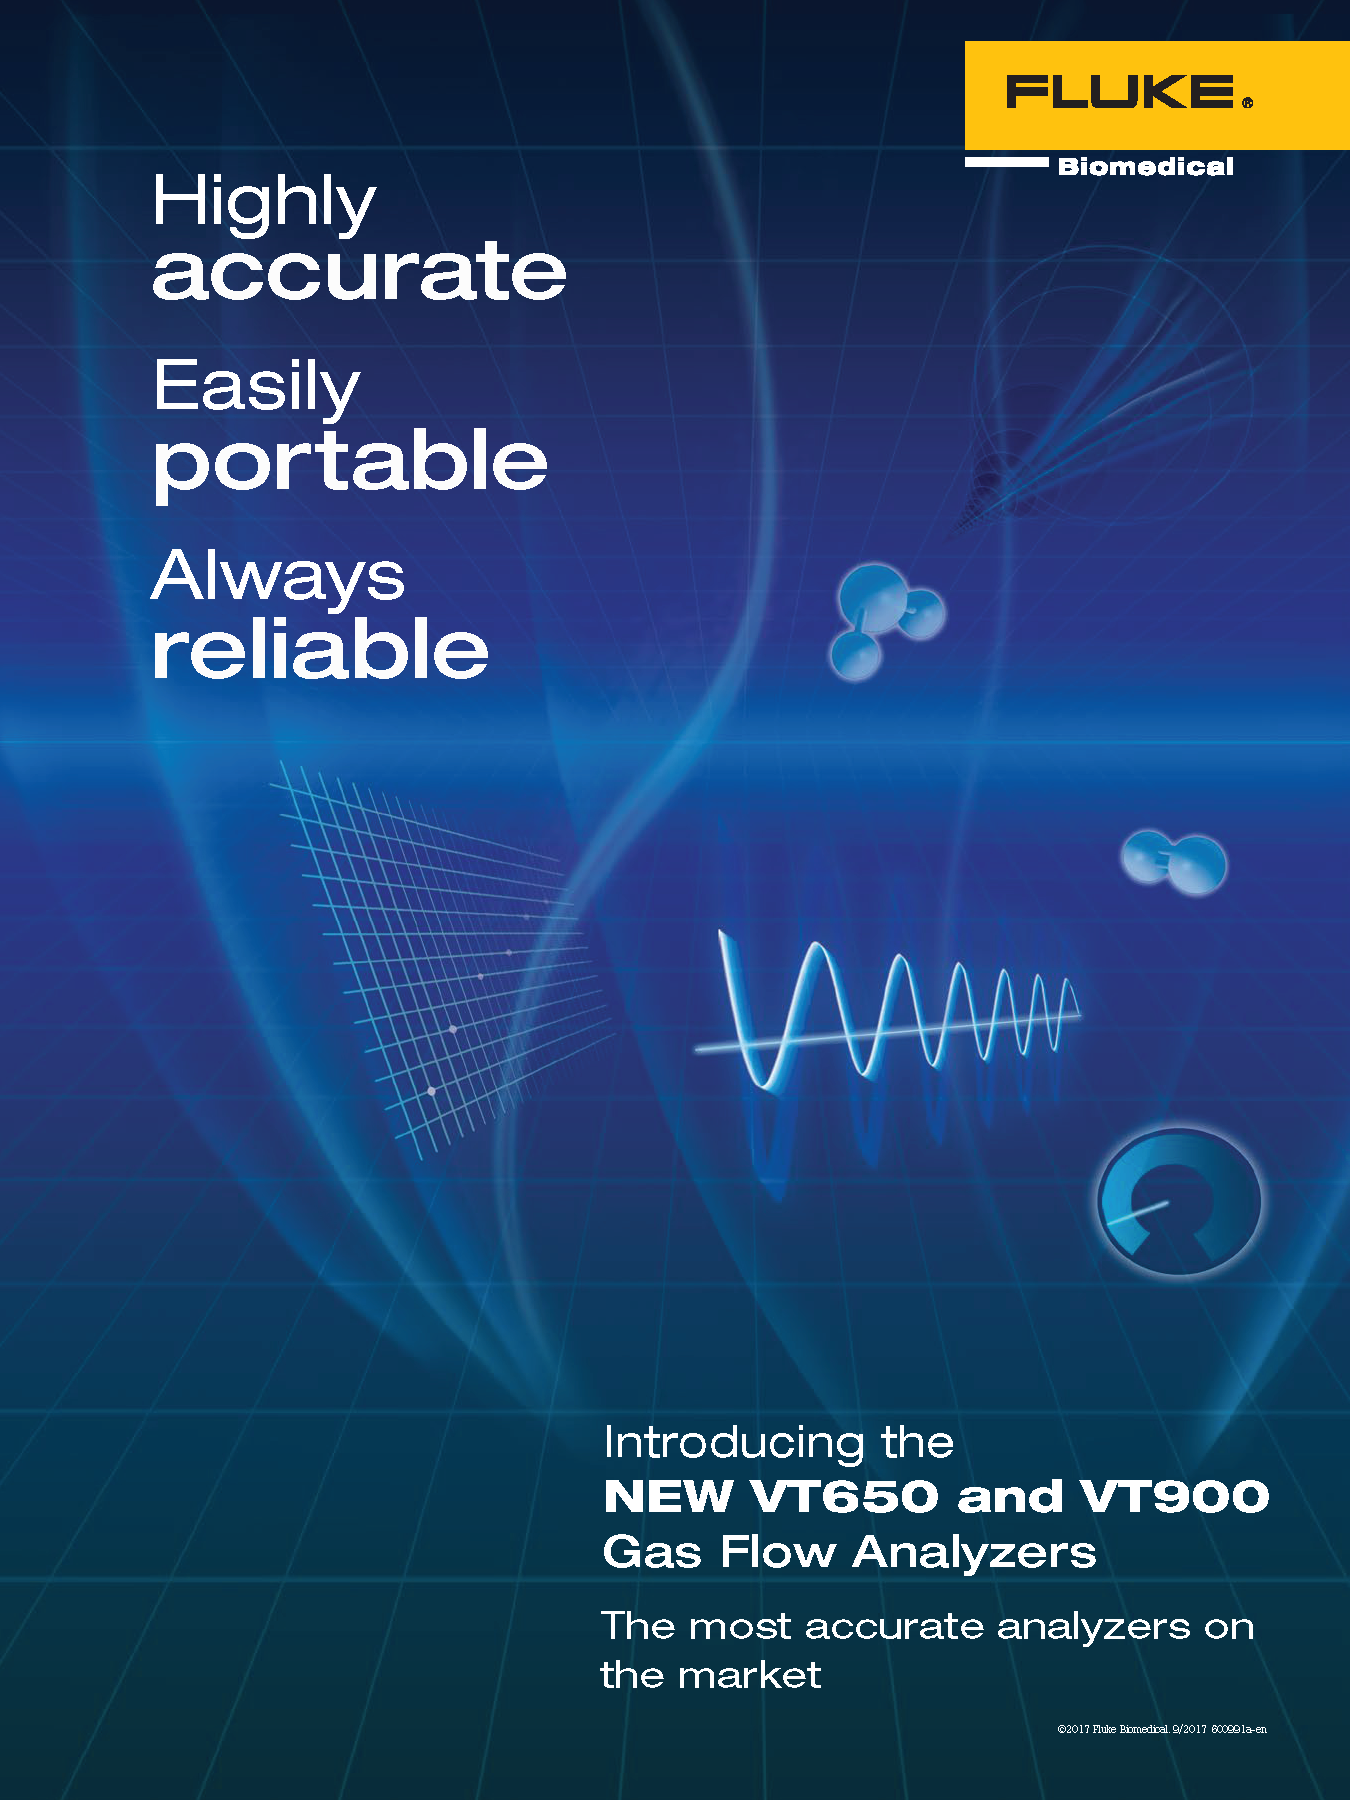 Fluke Biomedical New Product, VT650/VT900 Folder Cover